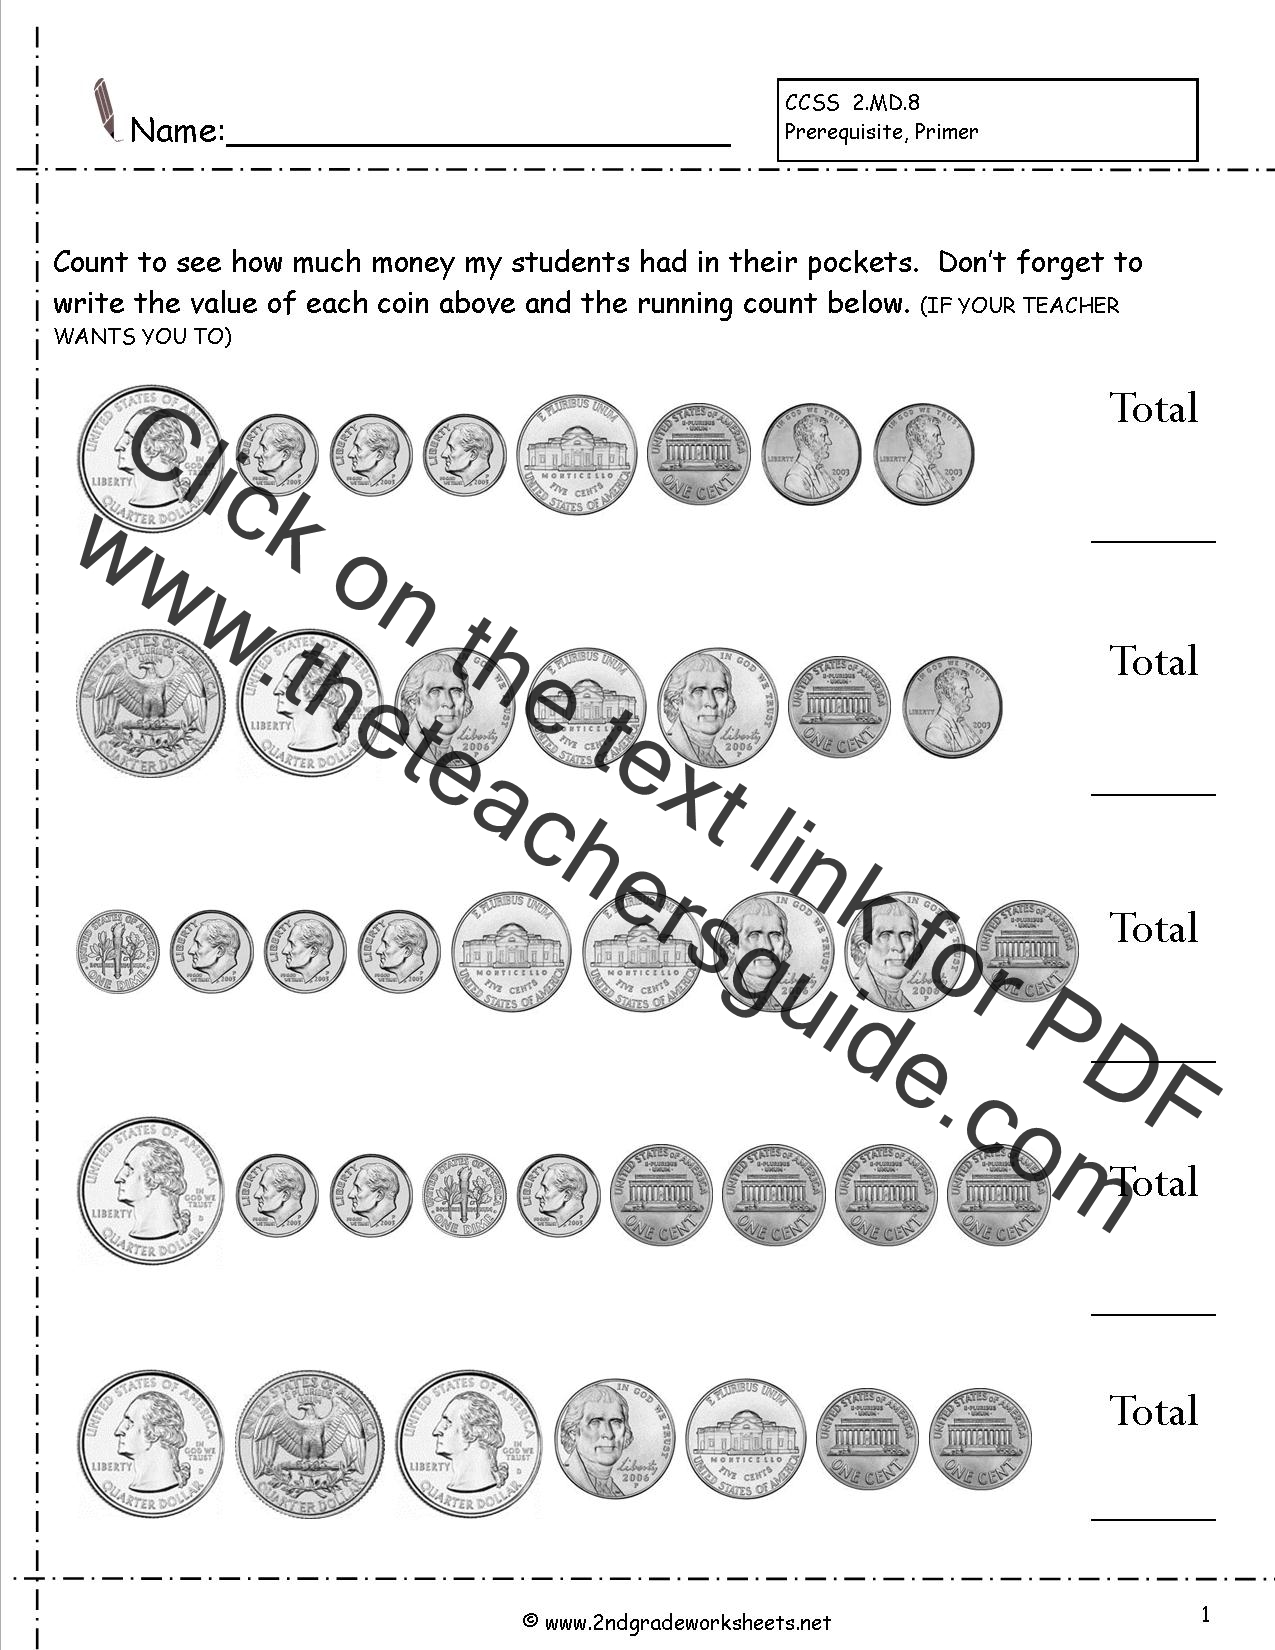 worksheet Counting Pennies Worksheets 1st Grade counting coins and money worksheets printouts worksheets